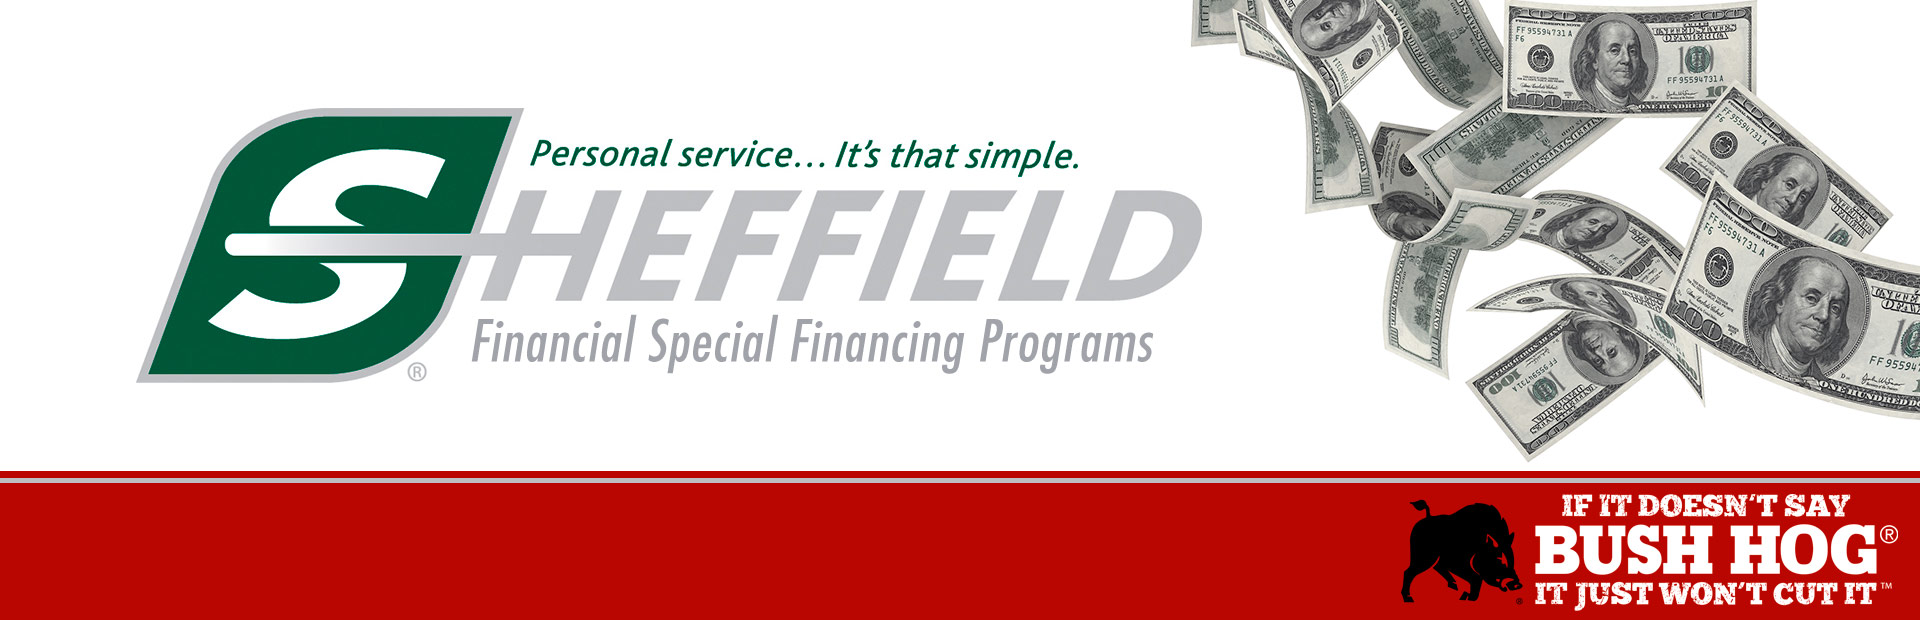 Bush Hog: Sheffield Financing Programs